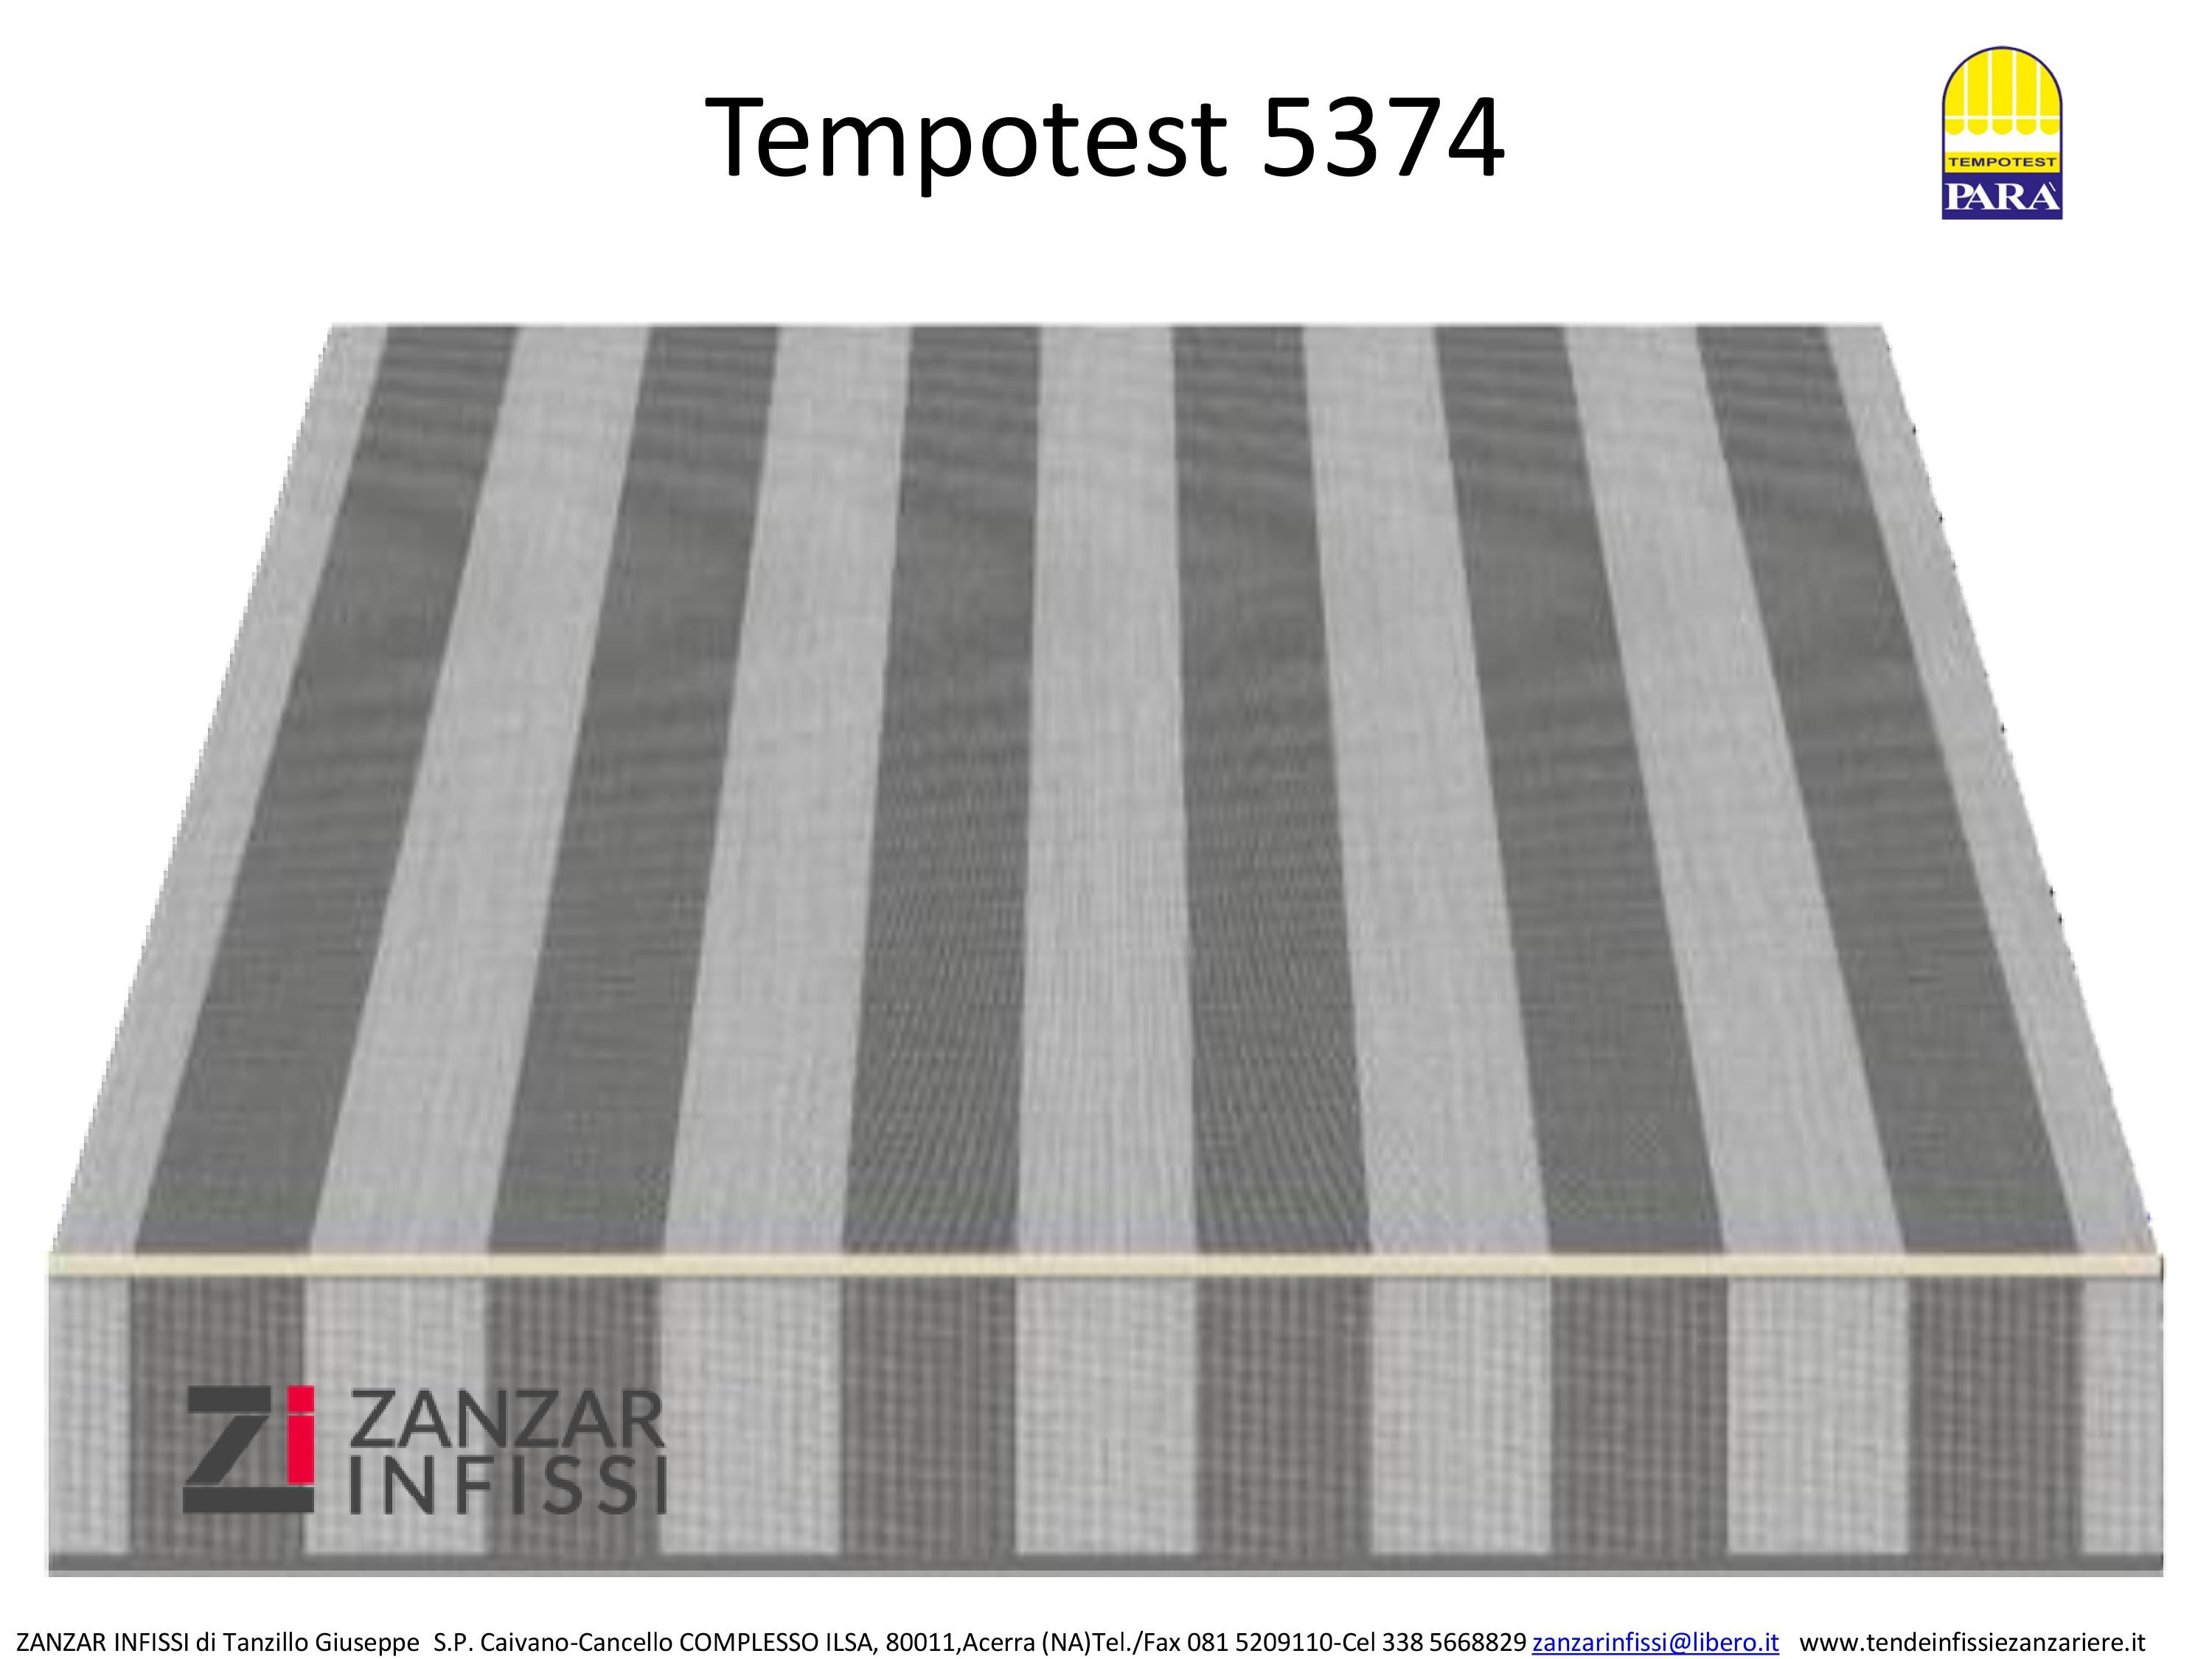 Tempotest 5374